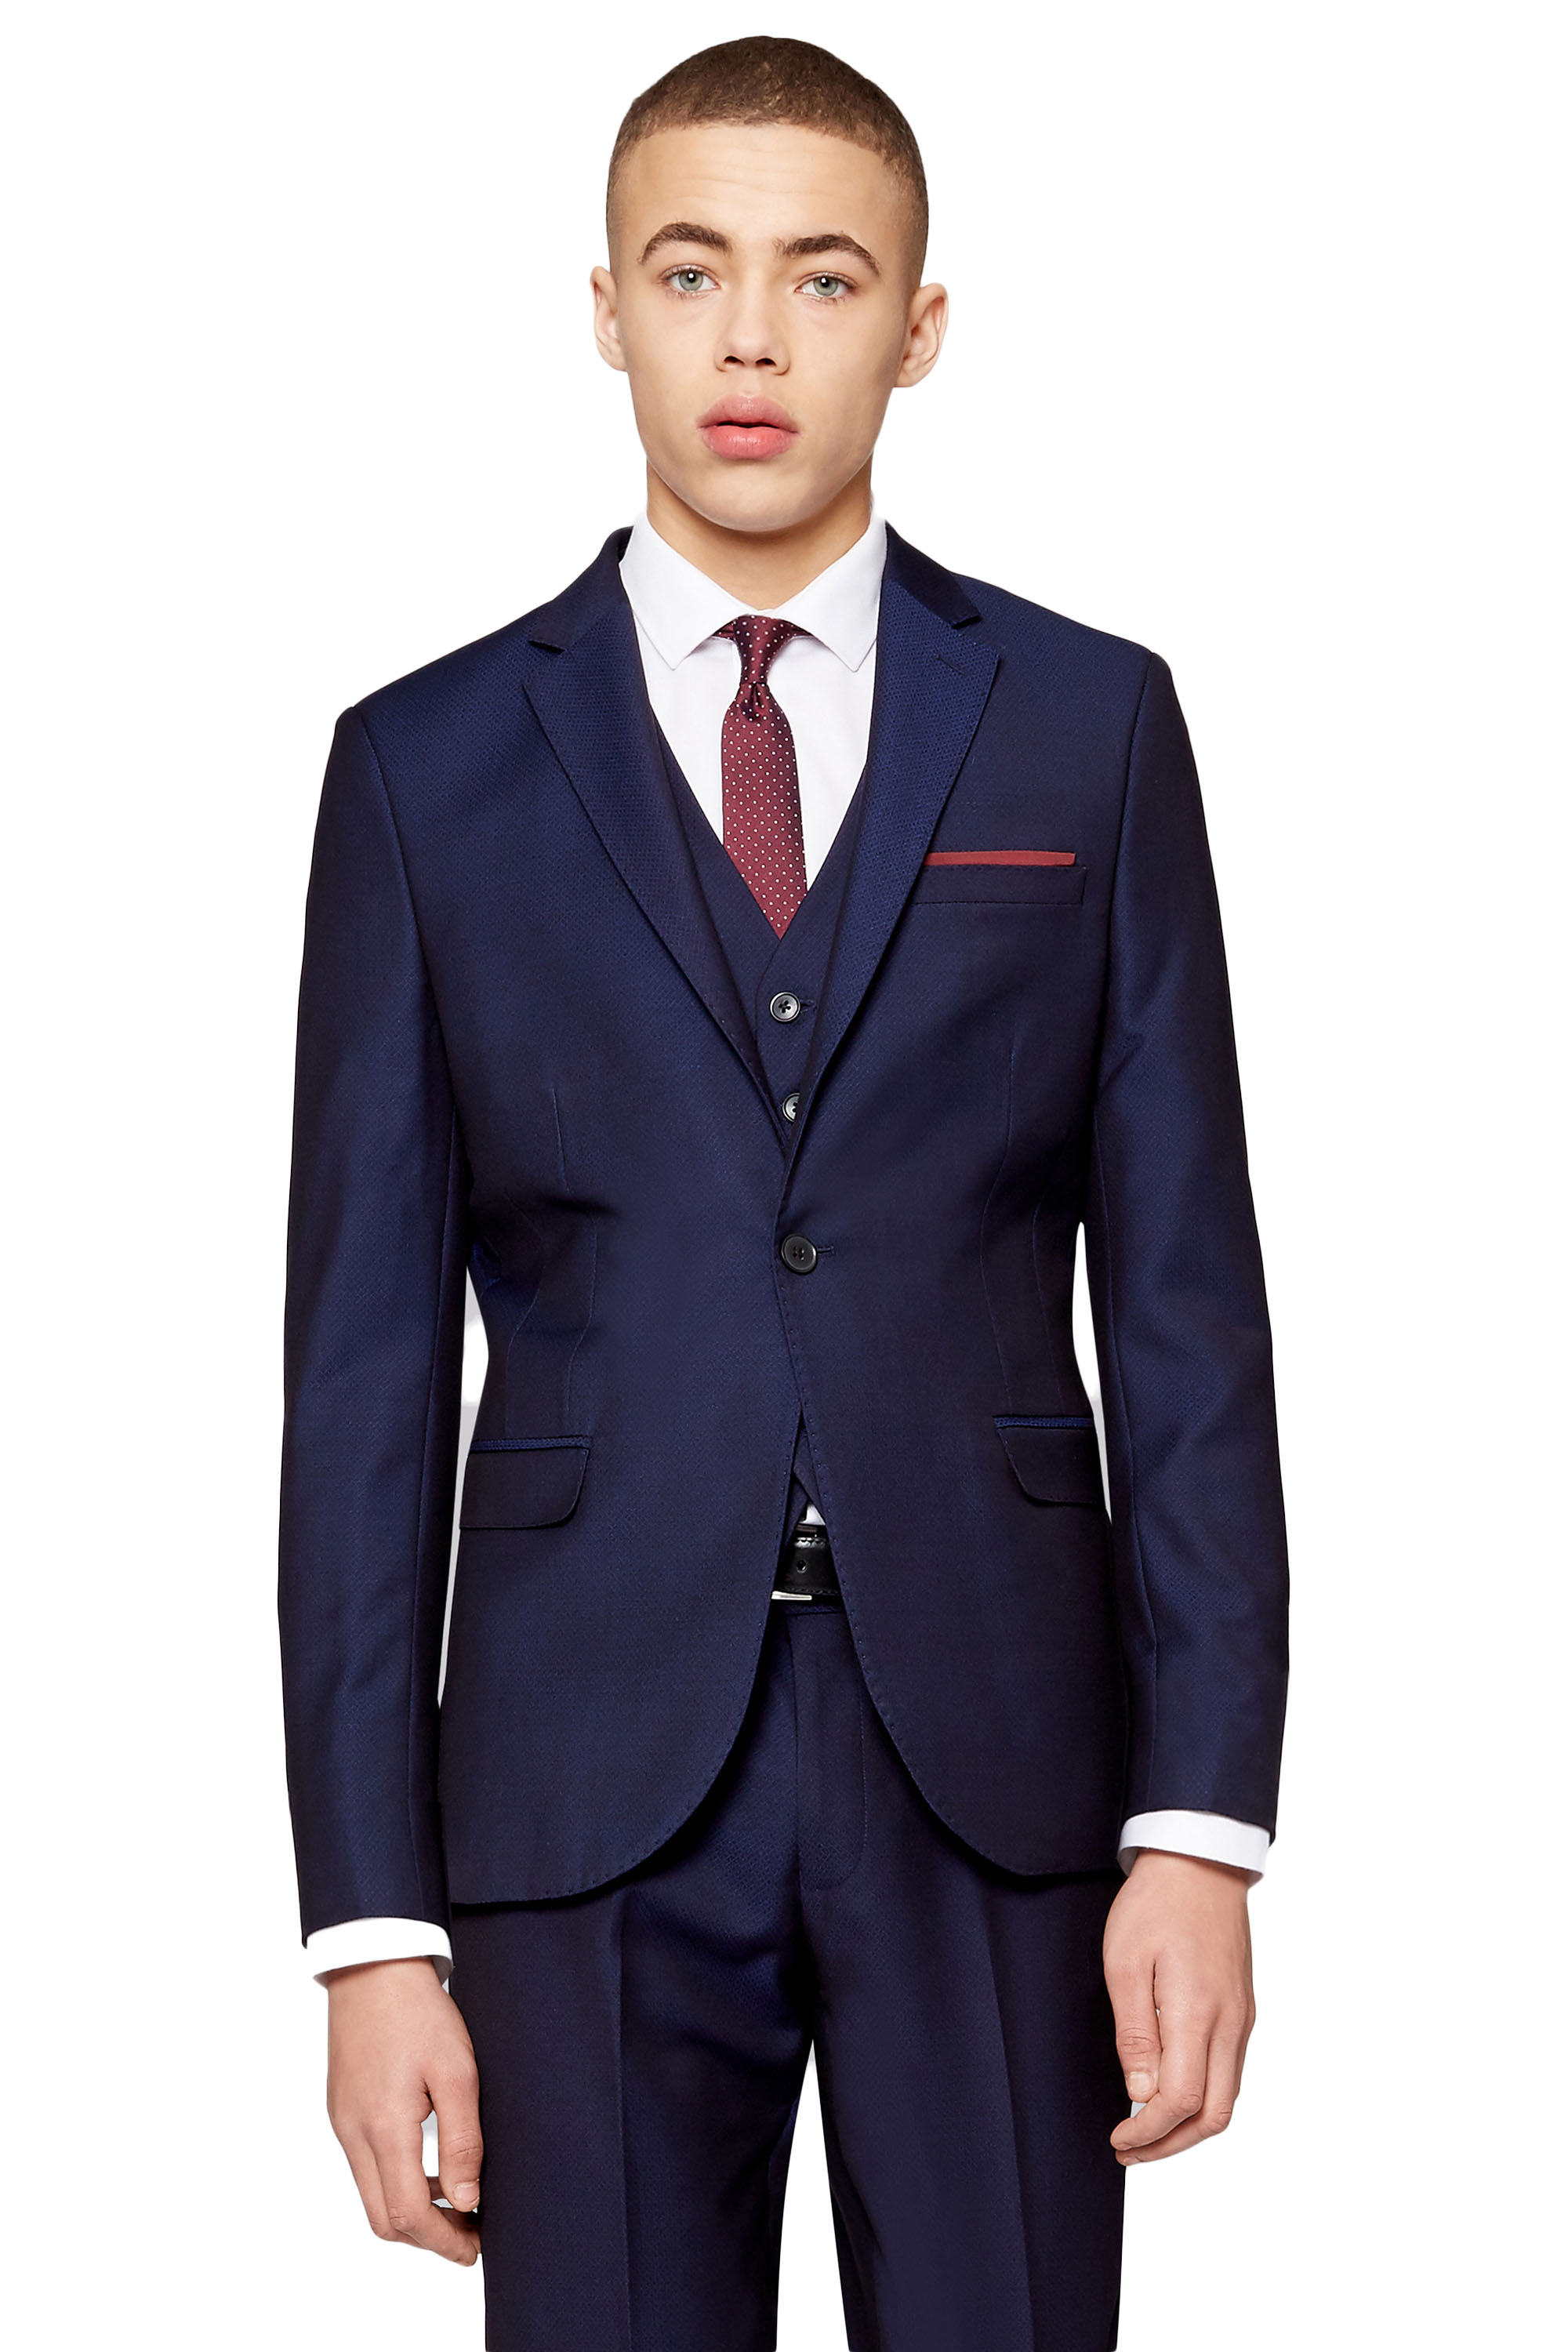 Moss London Mens Navy Blue Suit Jacket Slim Fit Jacquard One ...